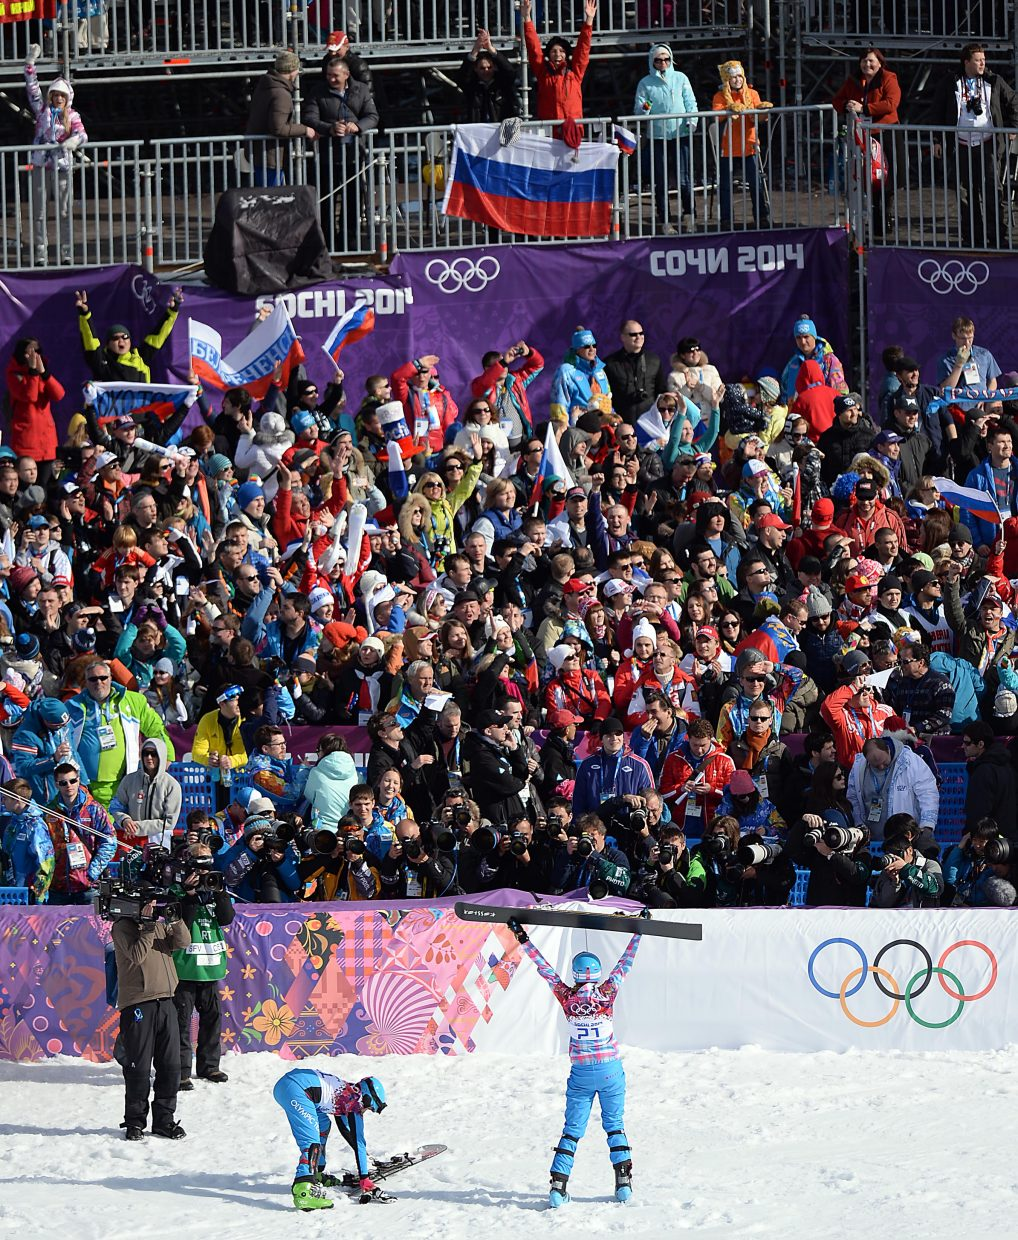 Alena Zavarzina lifts his snowboard above her head after securing a bronze medal on home snow in the women's parallel giant slalom event at the 2014 Winter Olympics.